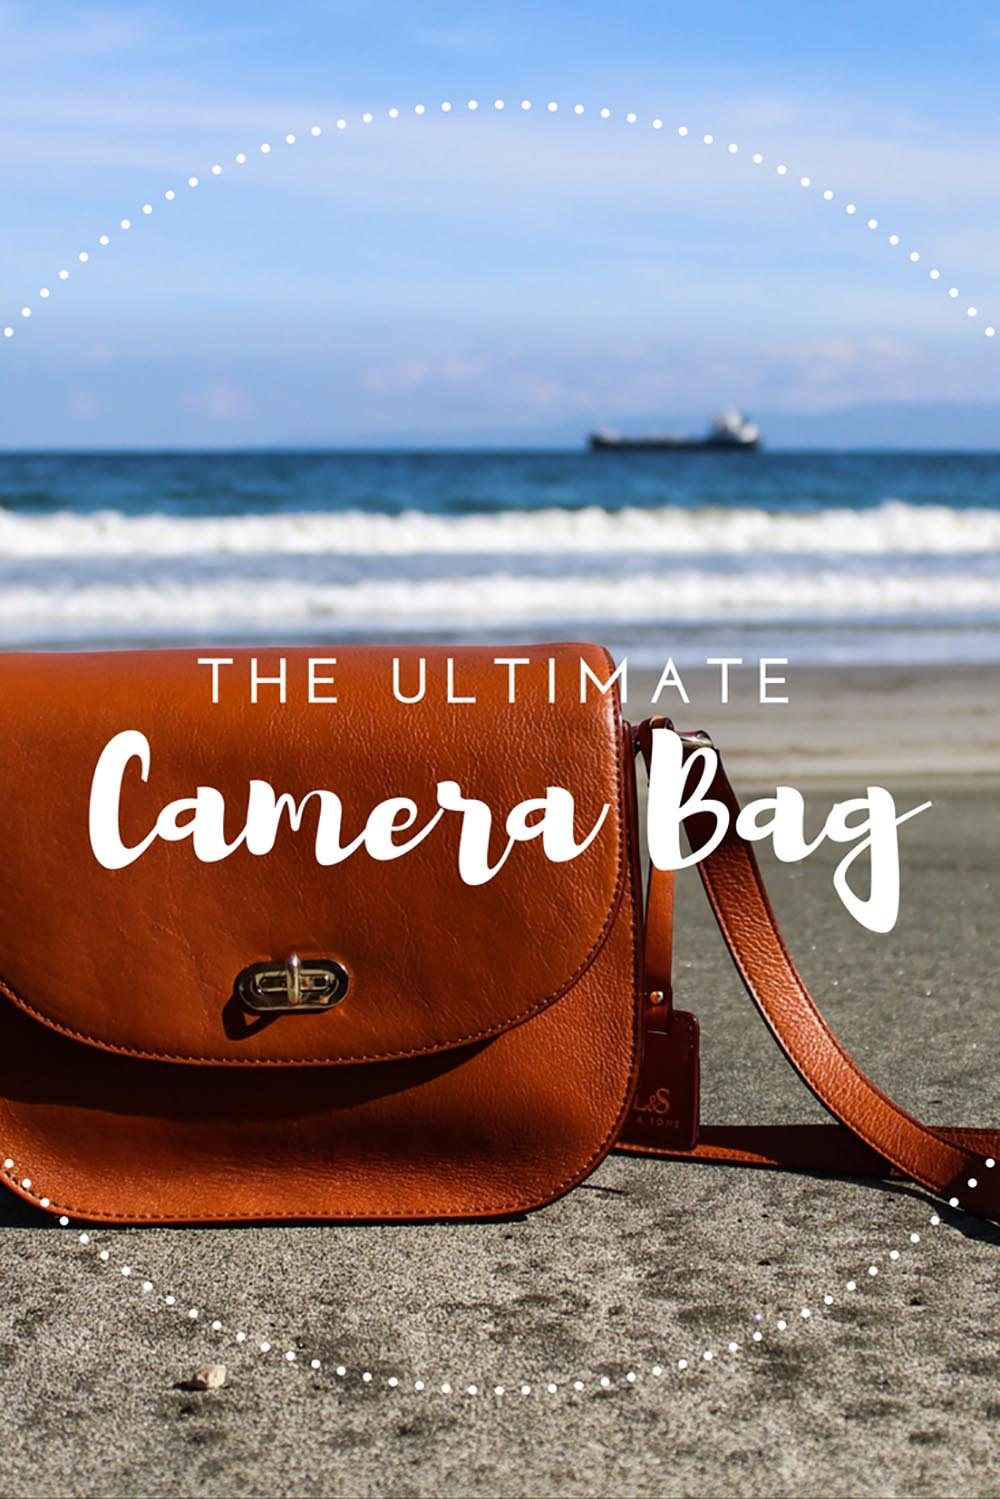 About to give up on finding a stylish camera bag? Don't because I just found one! Let me introduce you to Lo & Sons' Claremont, the ultimate camera bag.